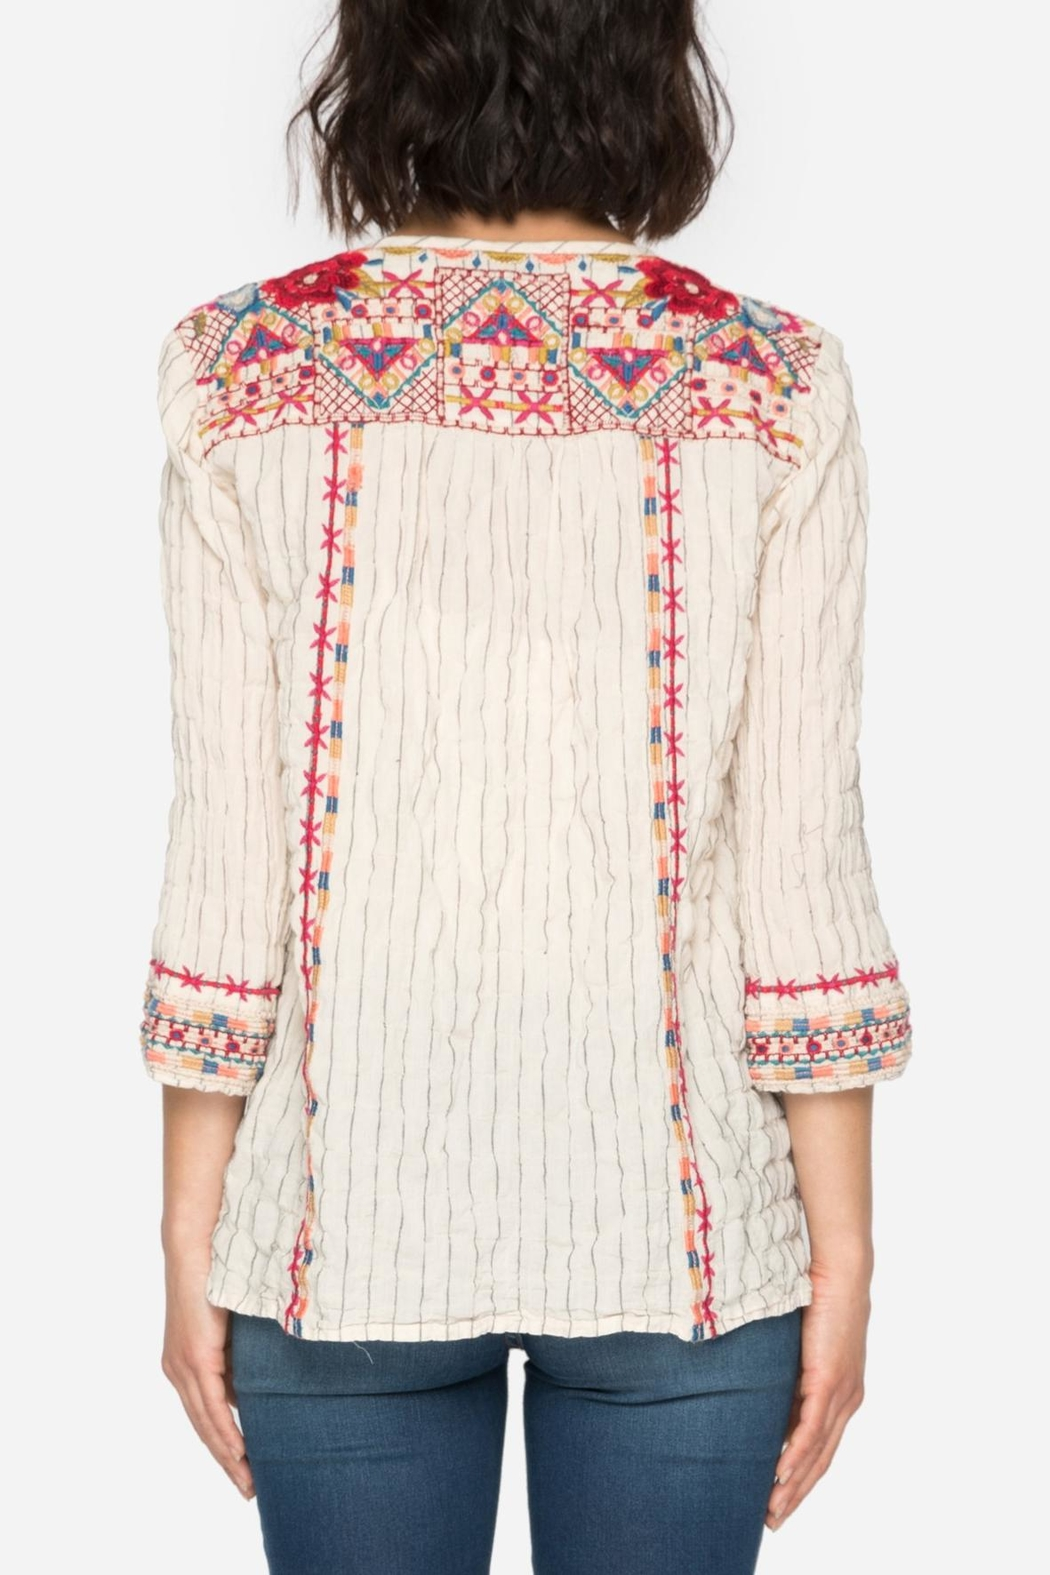 Johnny Was Embroidered Boho Blouse Top - Front Full Image